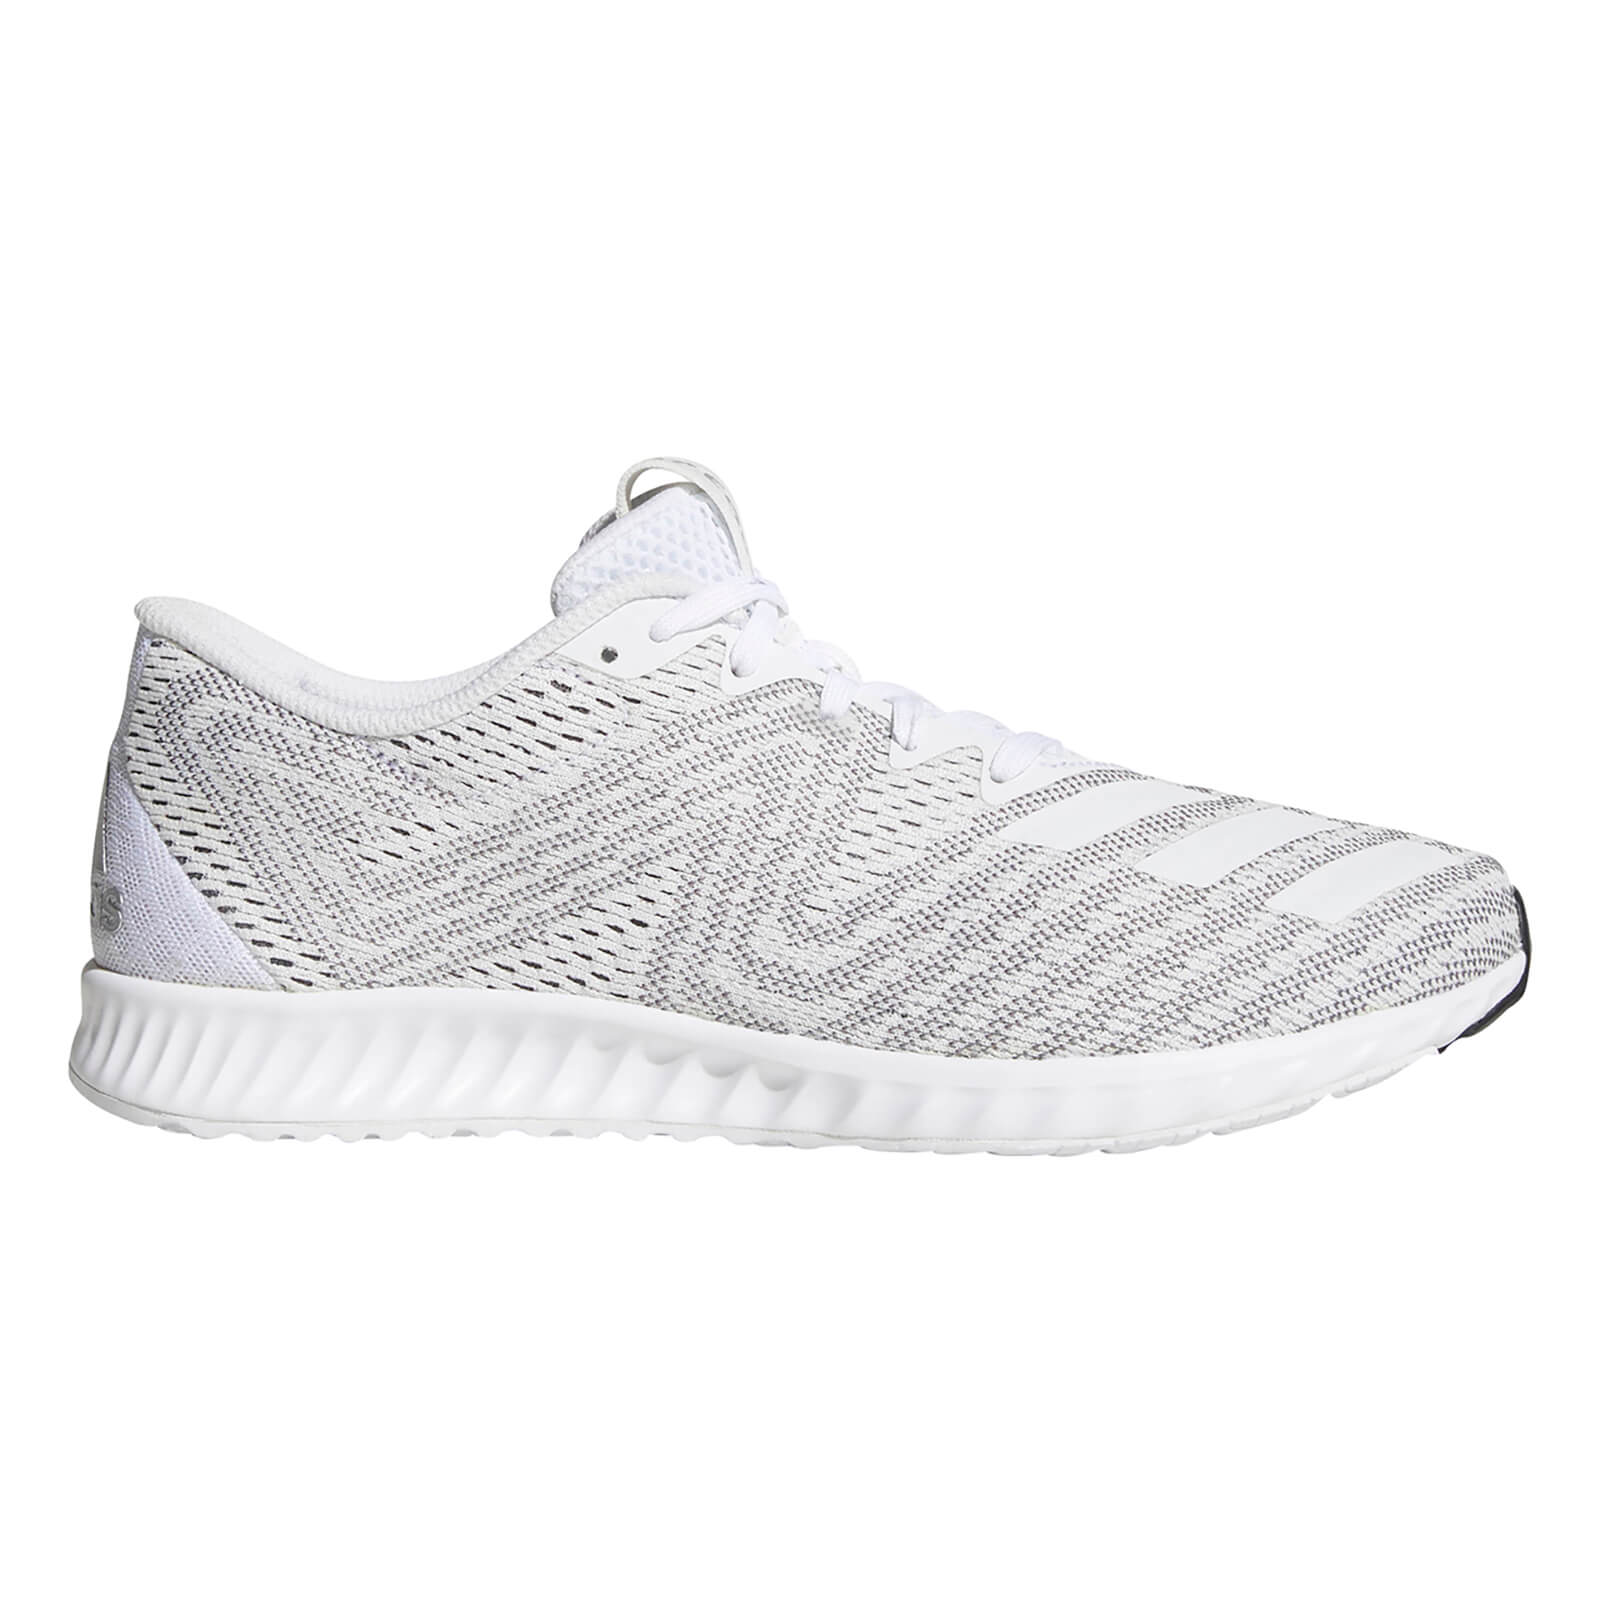 hot sale online a655f e68e5 adidas Women's Aerobounce PR Training Shoes - White